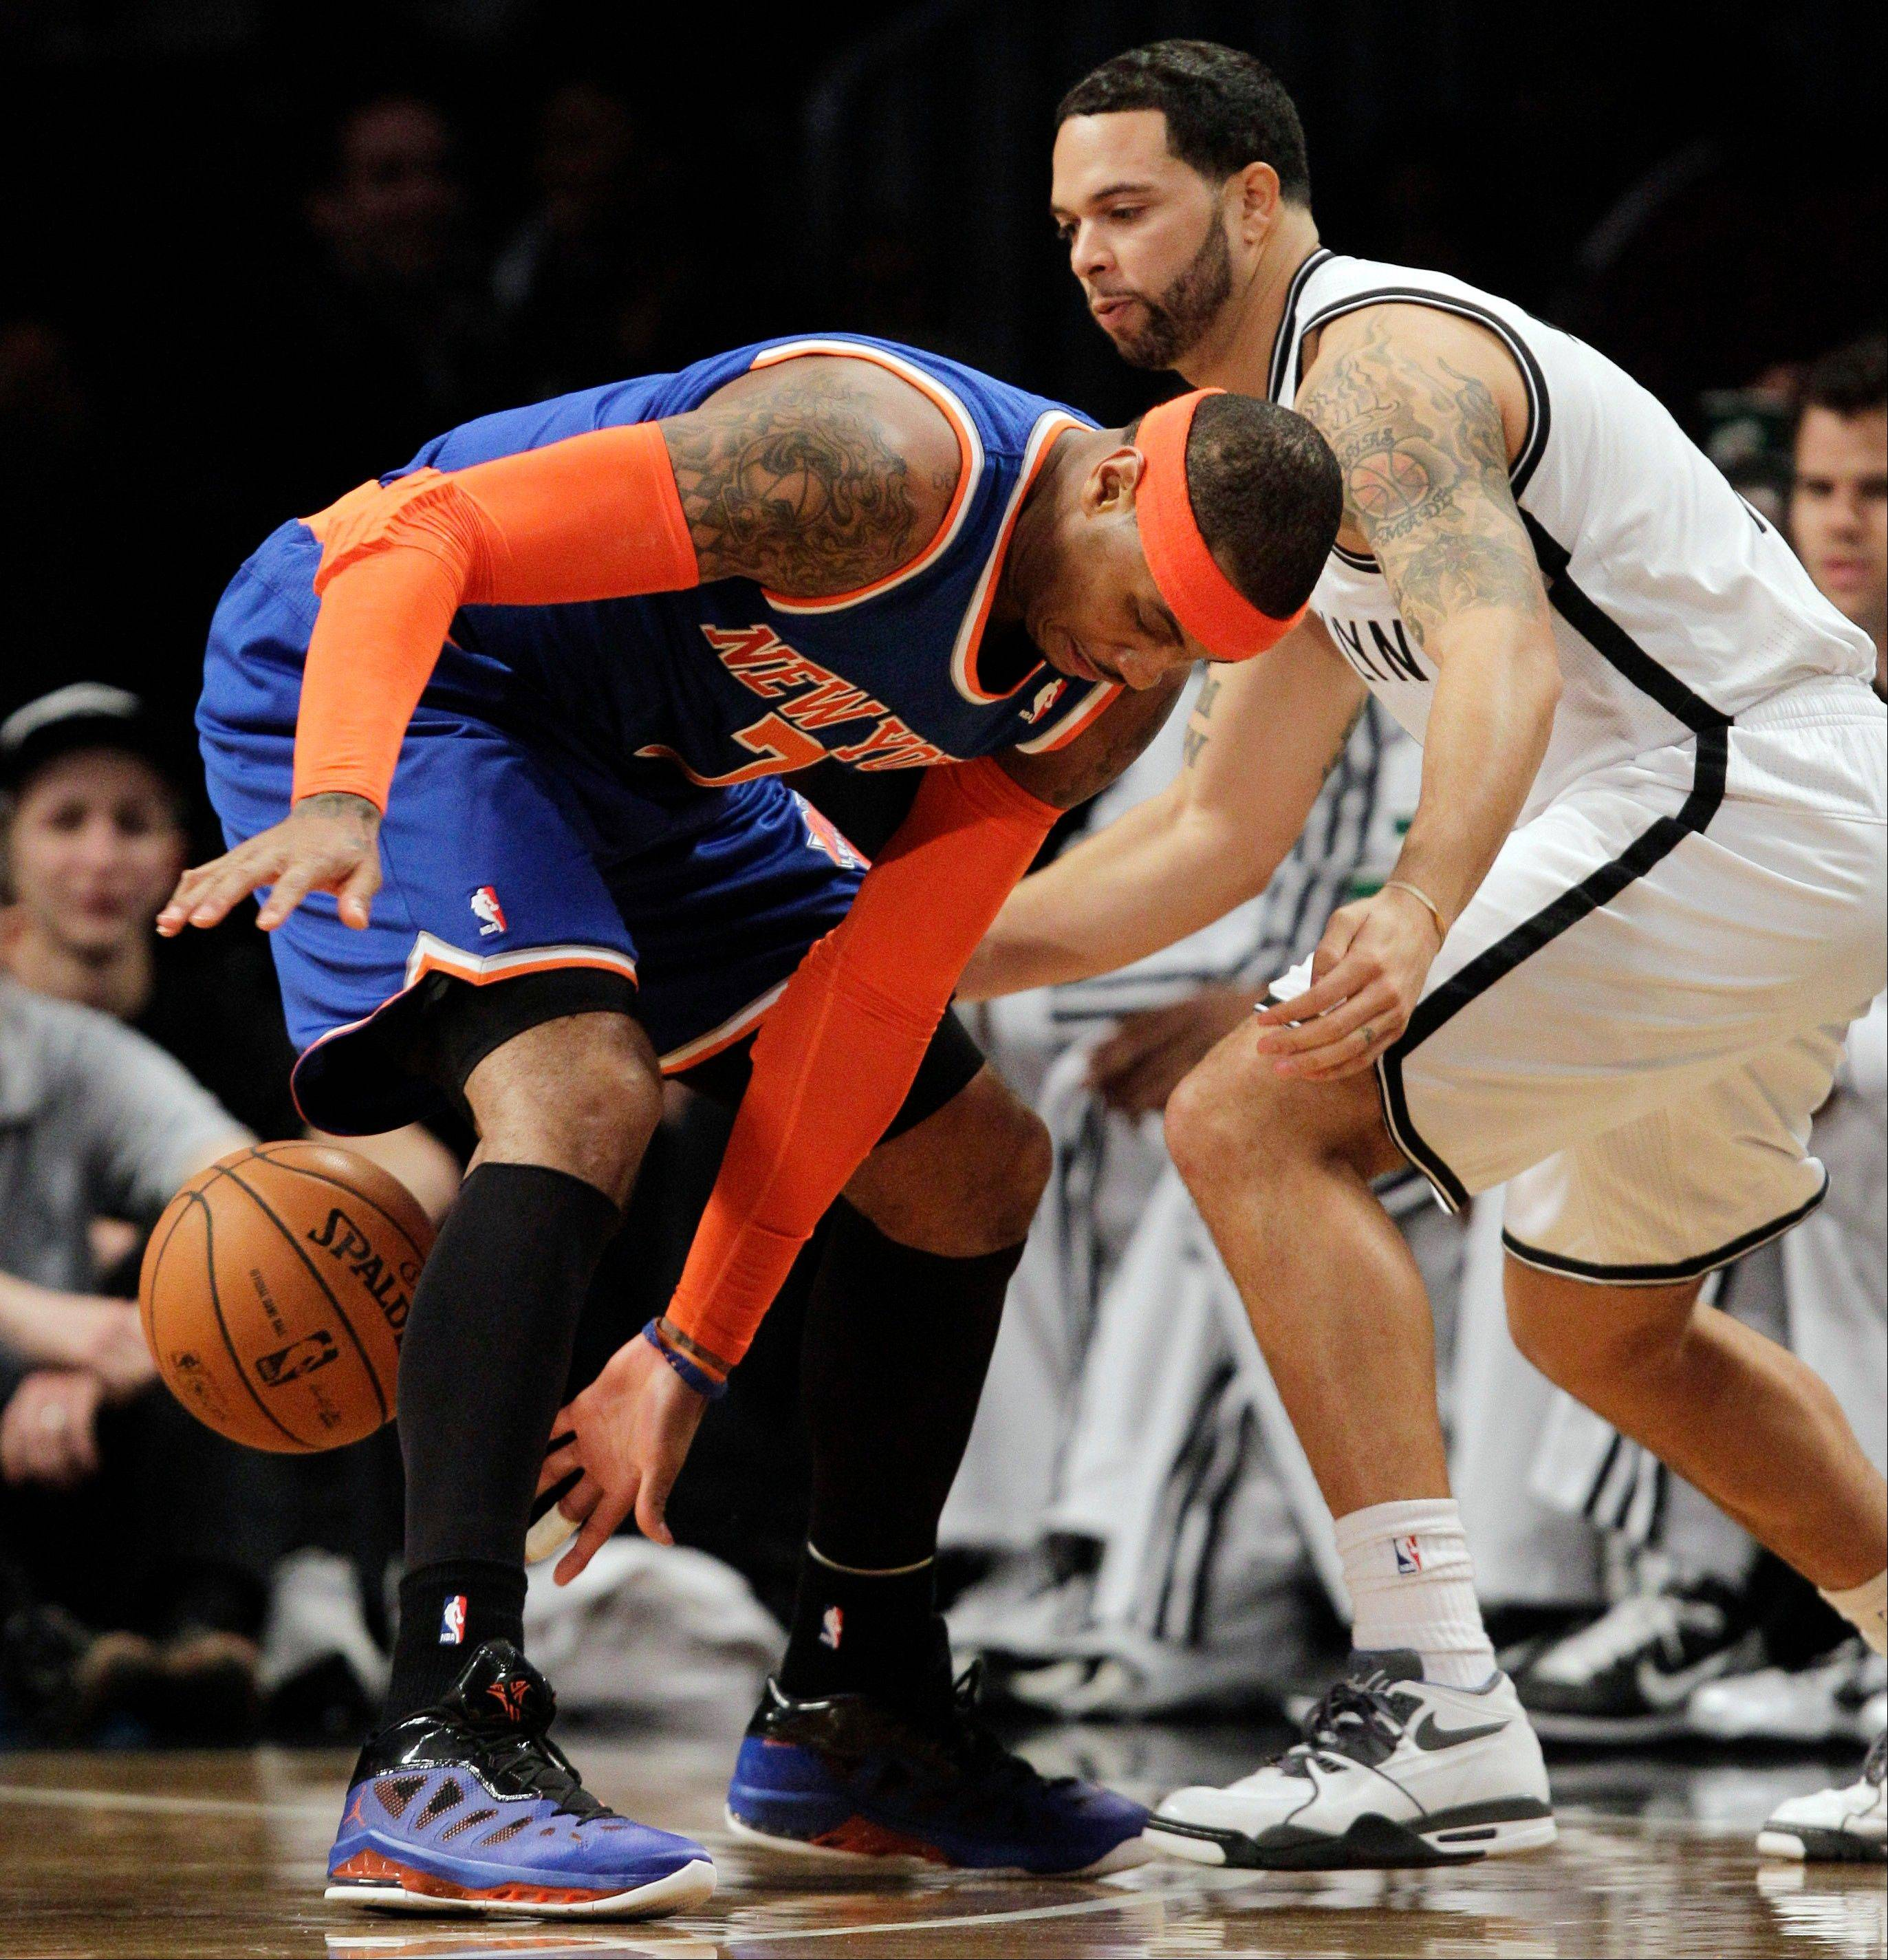 New York Knicks forward Carmelo Anthony loses the ball as Brooklyn Nets guard Deron Williams defends Tuesday during the first half at the Barclays Center in New York.